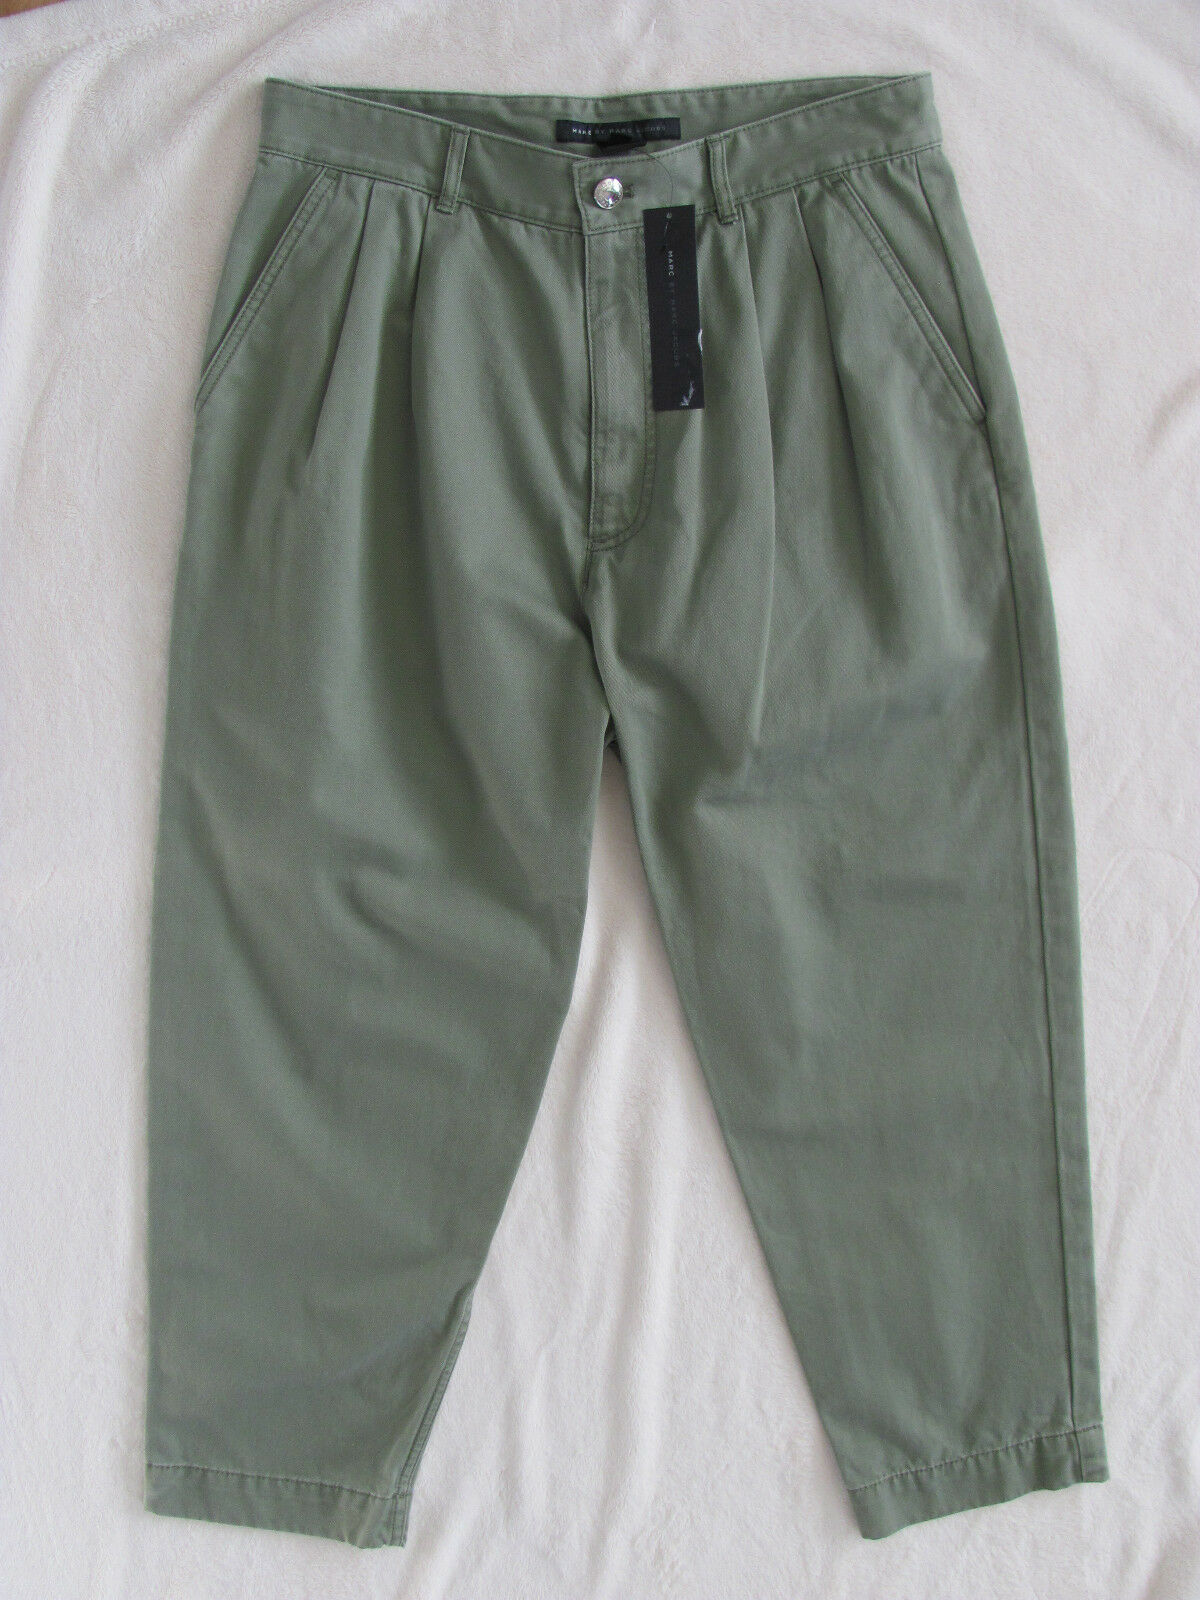 Marc by Marc Jacobs Pleated Cropped Capri Pants-Moore Green-Size 8 -NWT  278